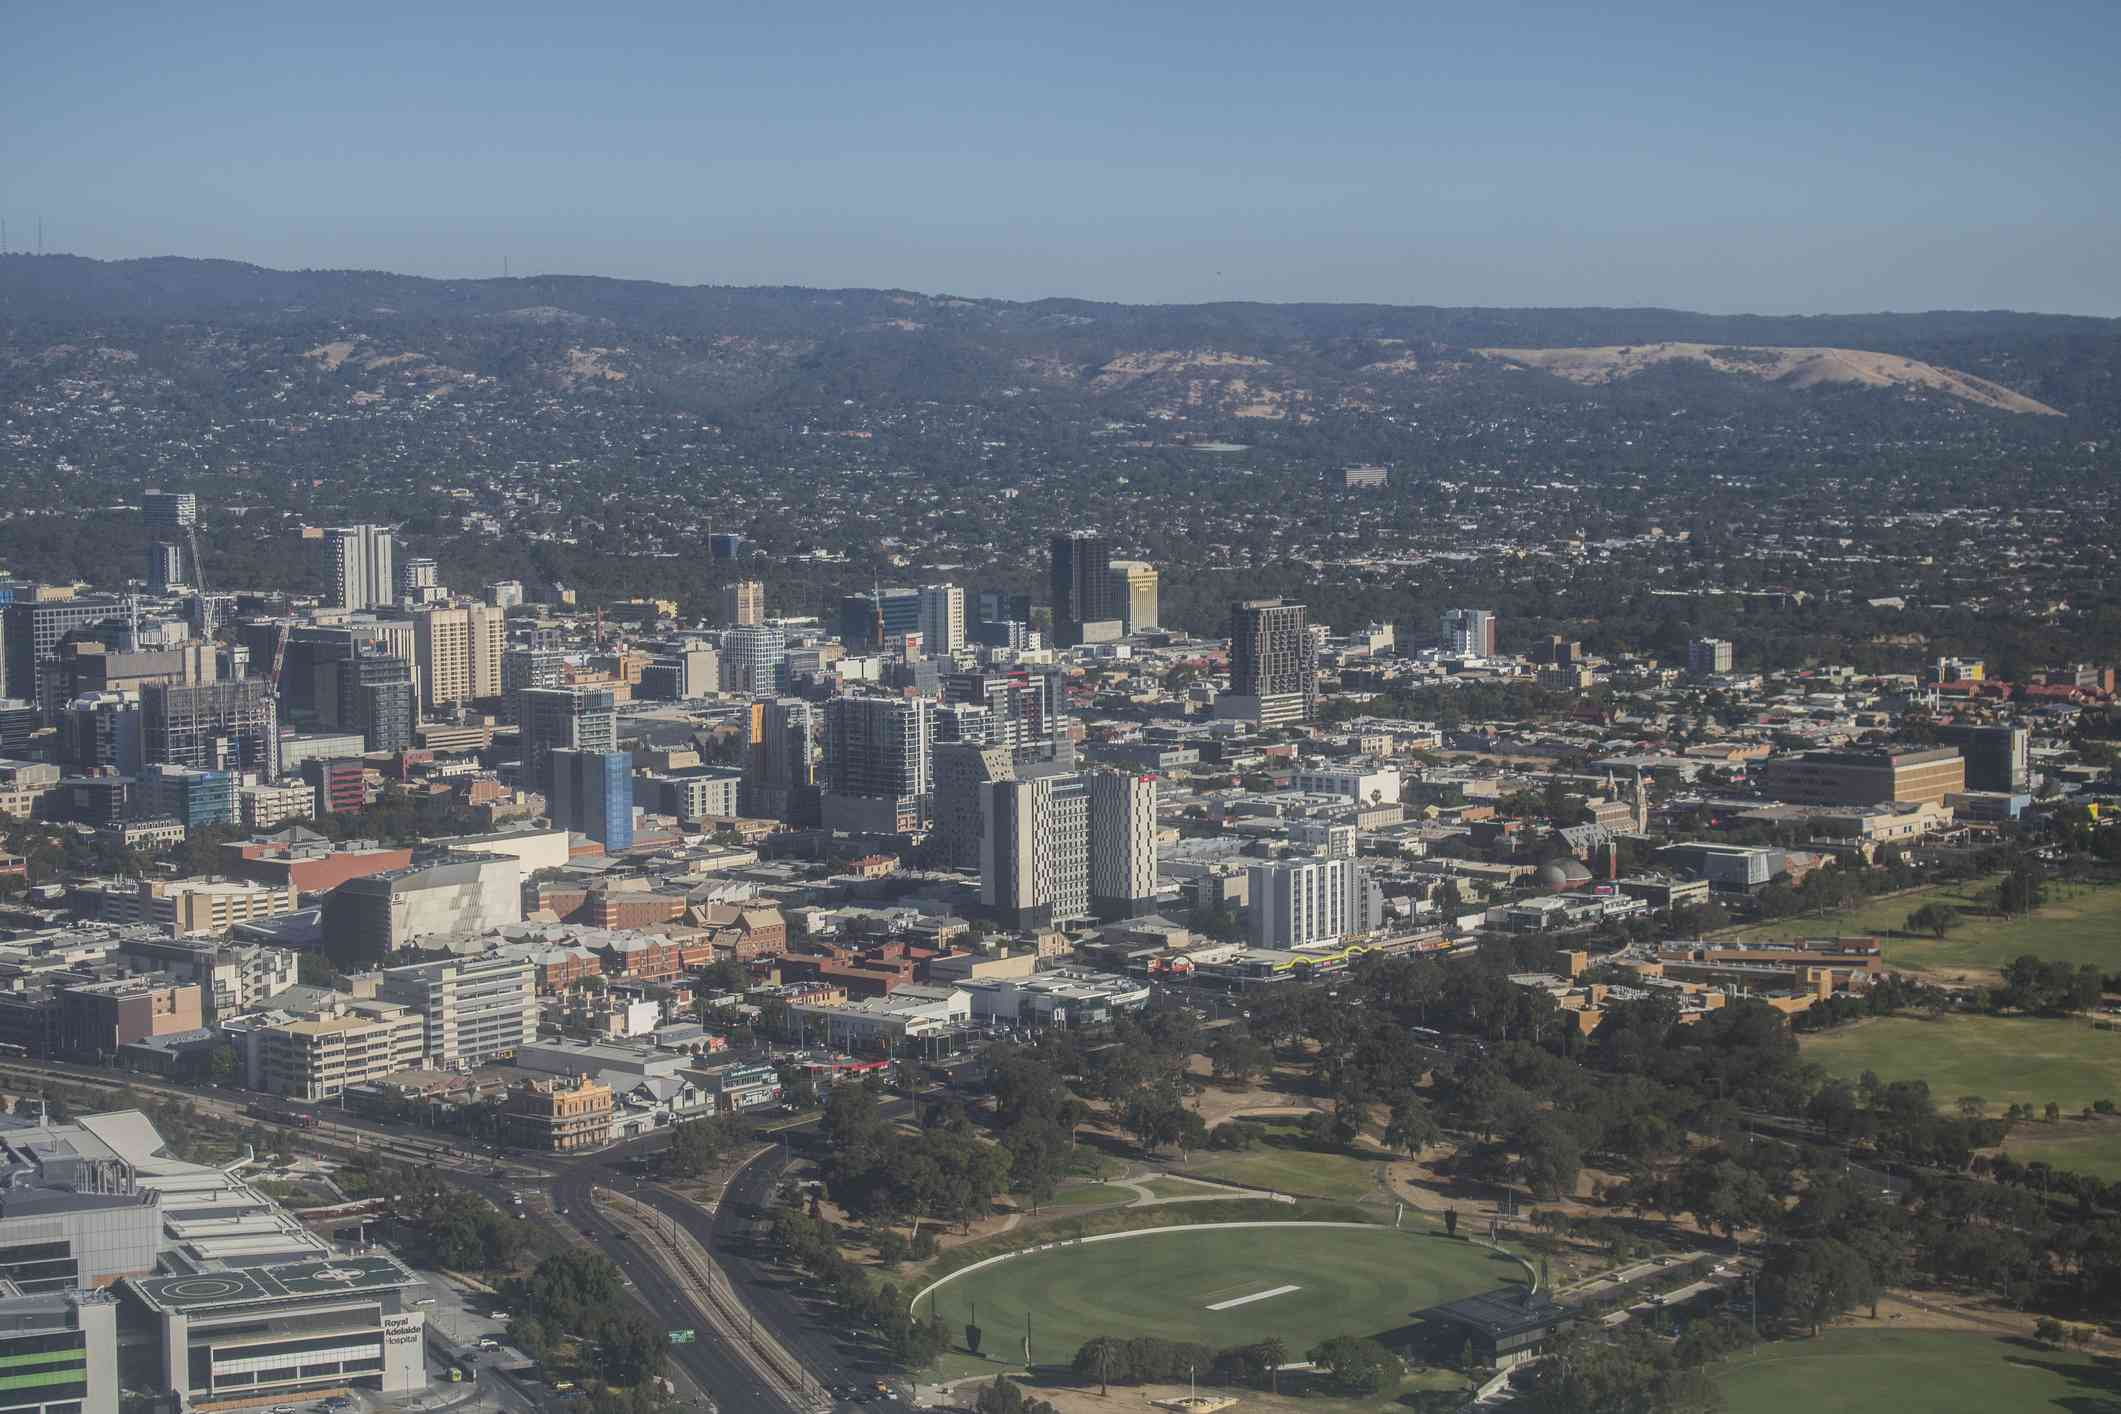 Aerial view of Adelaide central business district's tall office buildings surrounded by public green space lined with lush trees with green hills in the background under a hazy blue sky